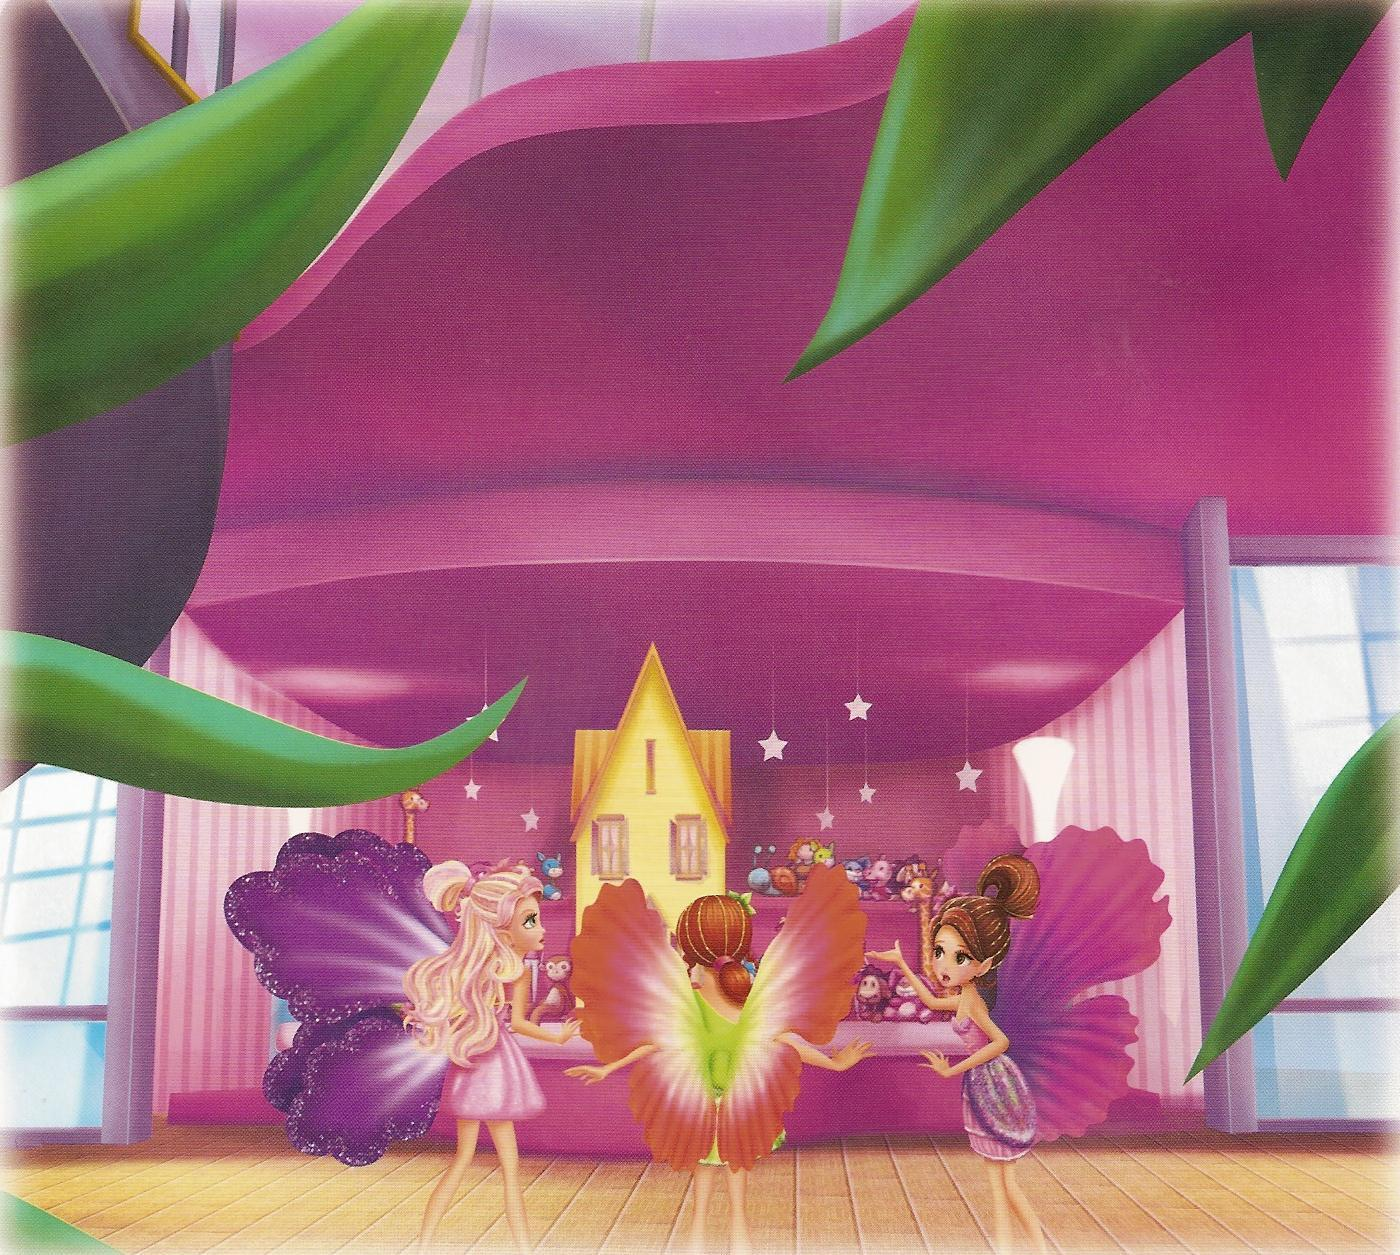 Barbie Thumbelina Movie